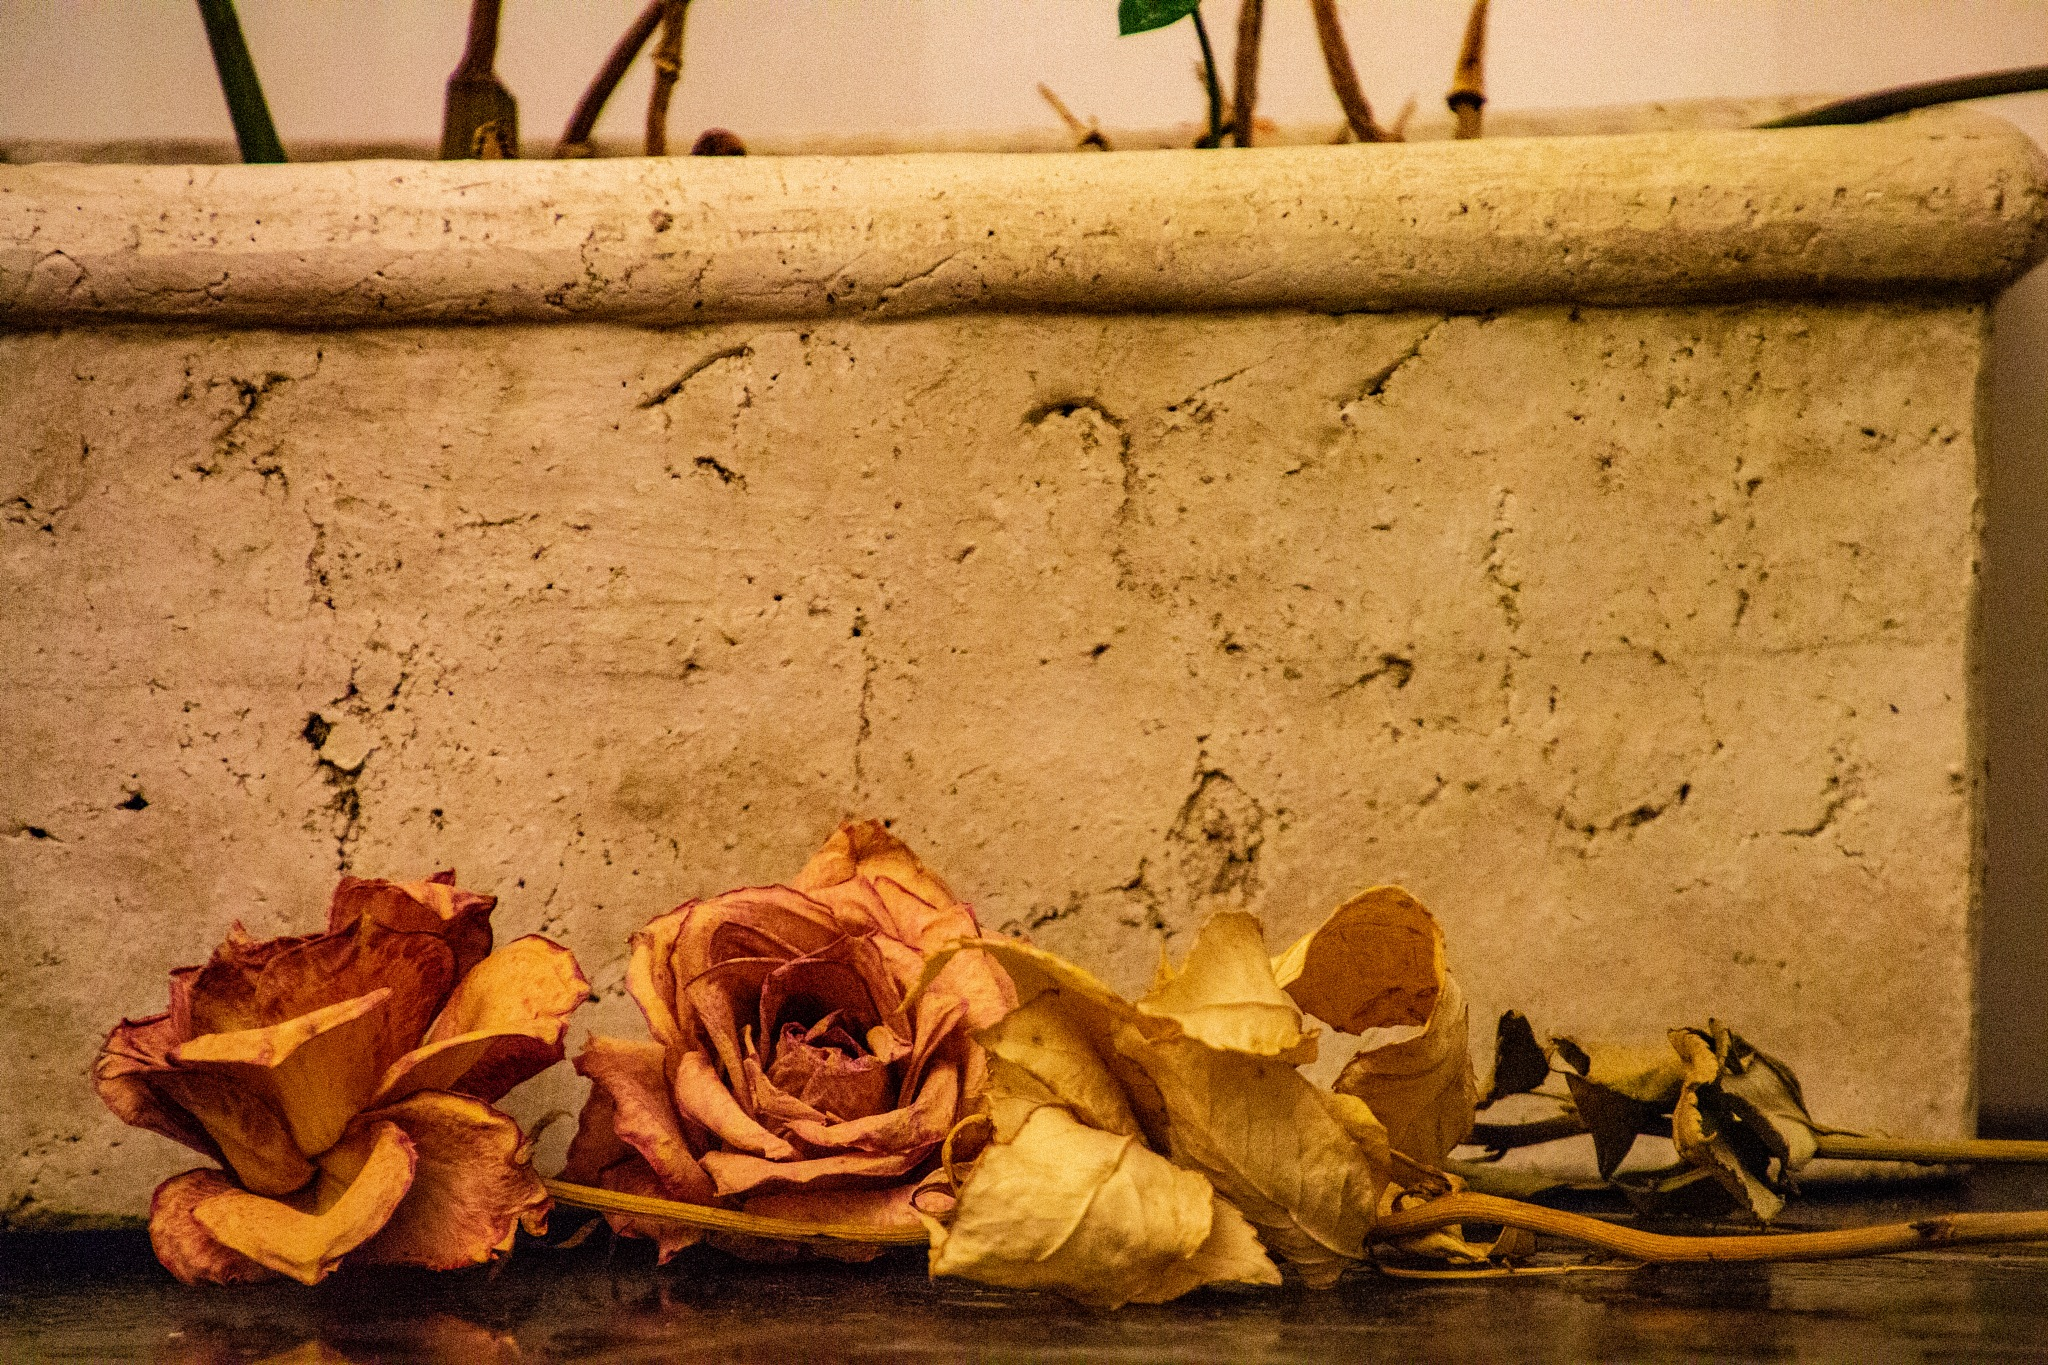 Withering roses by Carl Hult